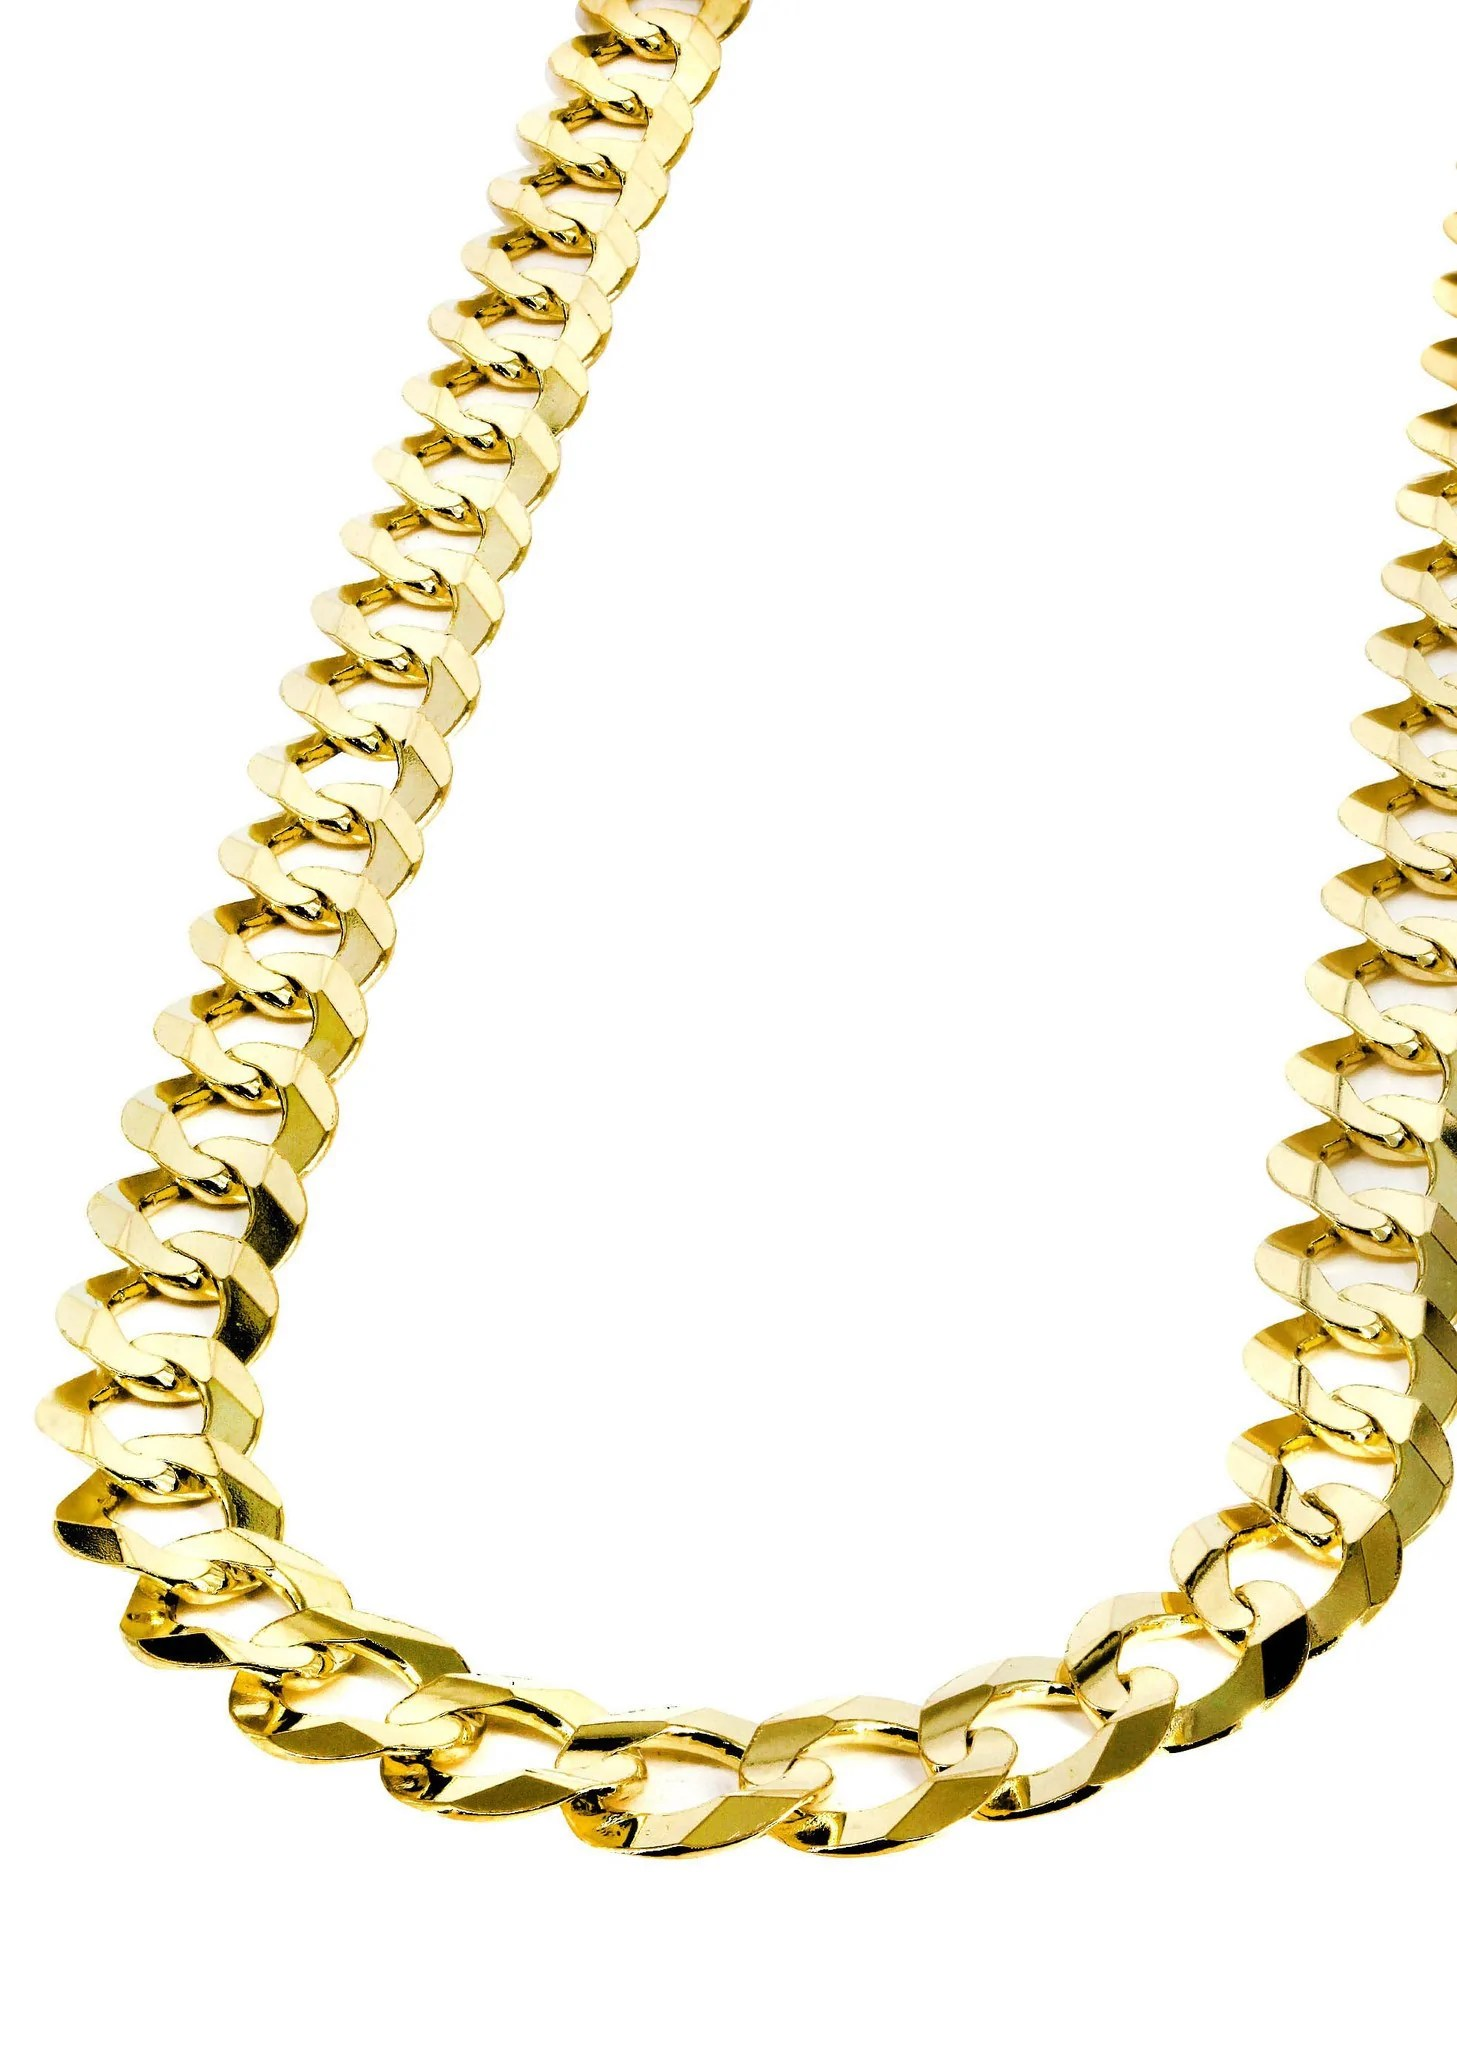 Mens Gold Chain - Solid Cuban Link 10k Frostnyc